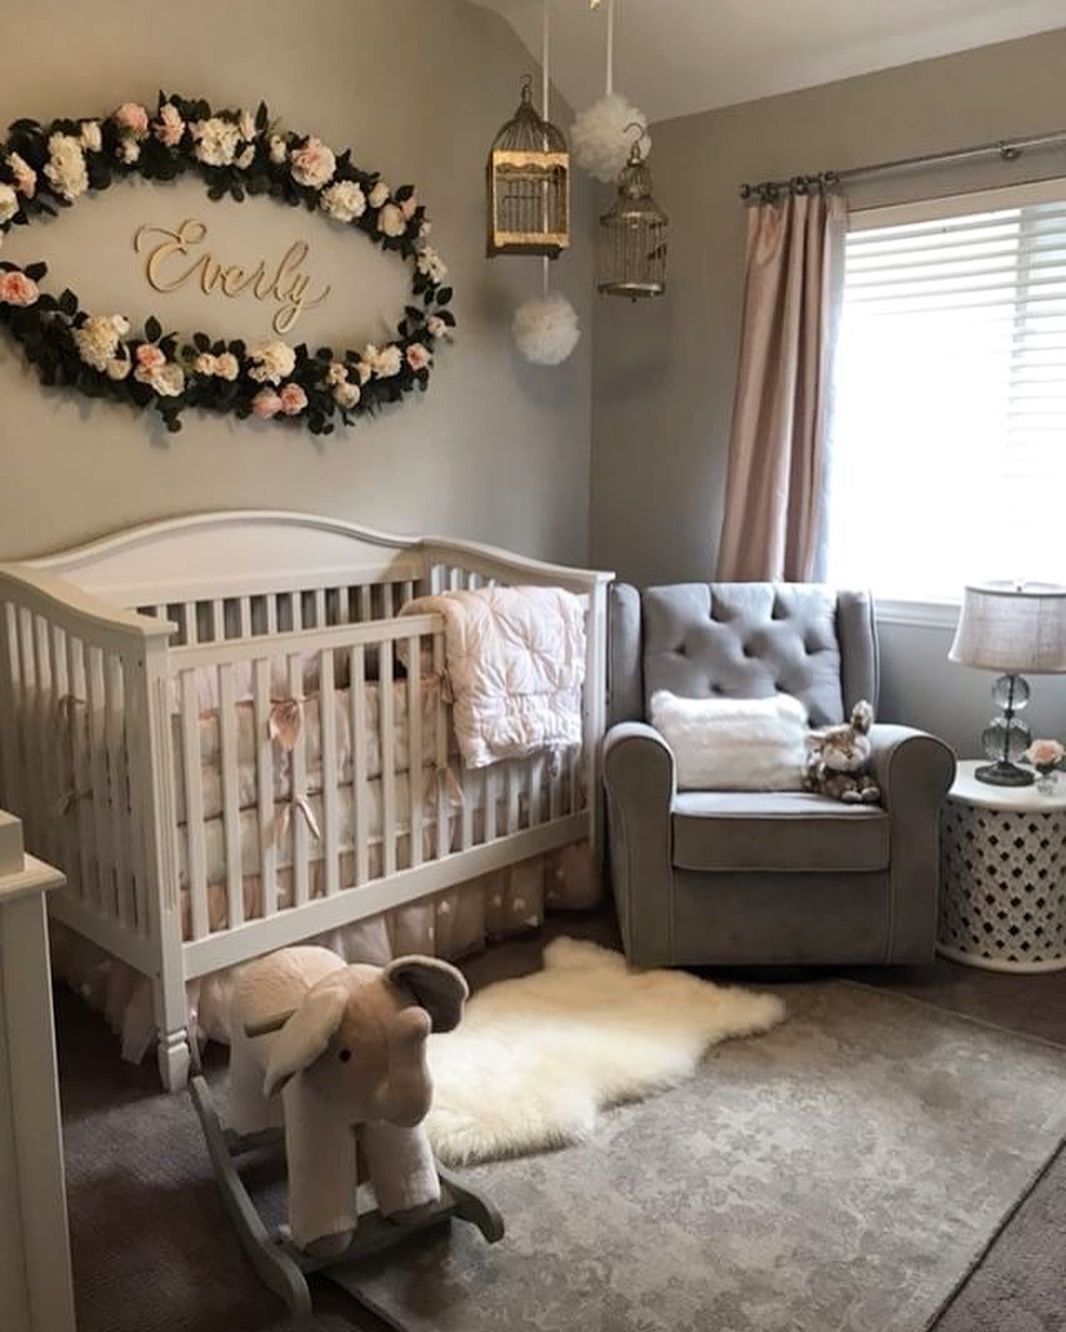 50 Inspiring Nursery Ideas for Your Baby Girl - Cute Designs You'll Love images